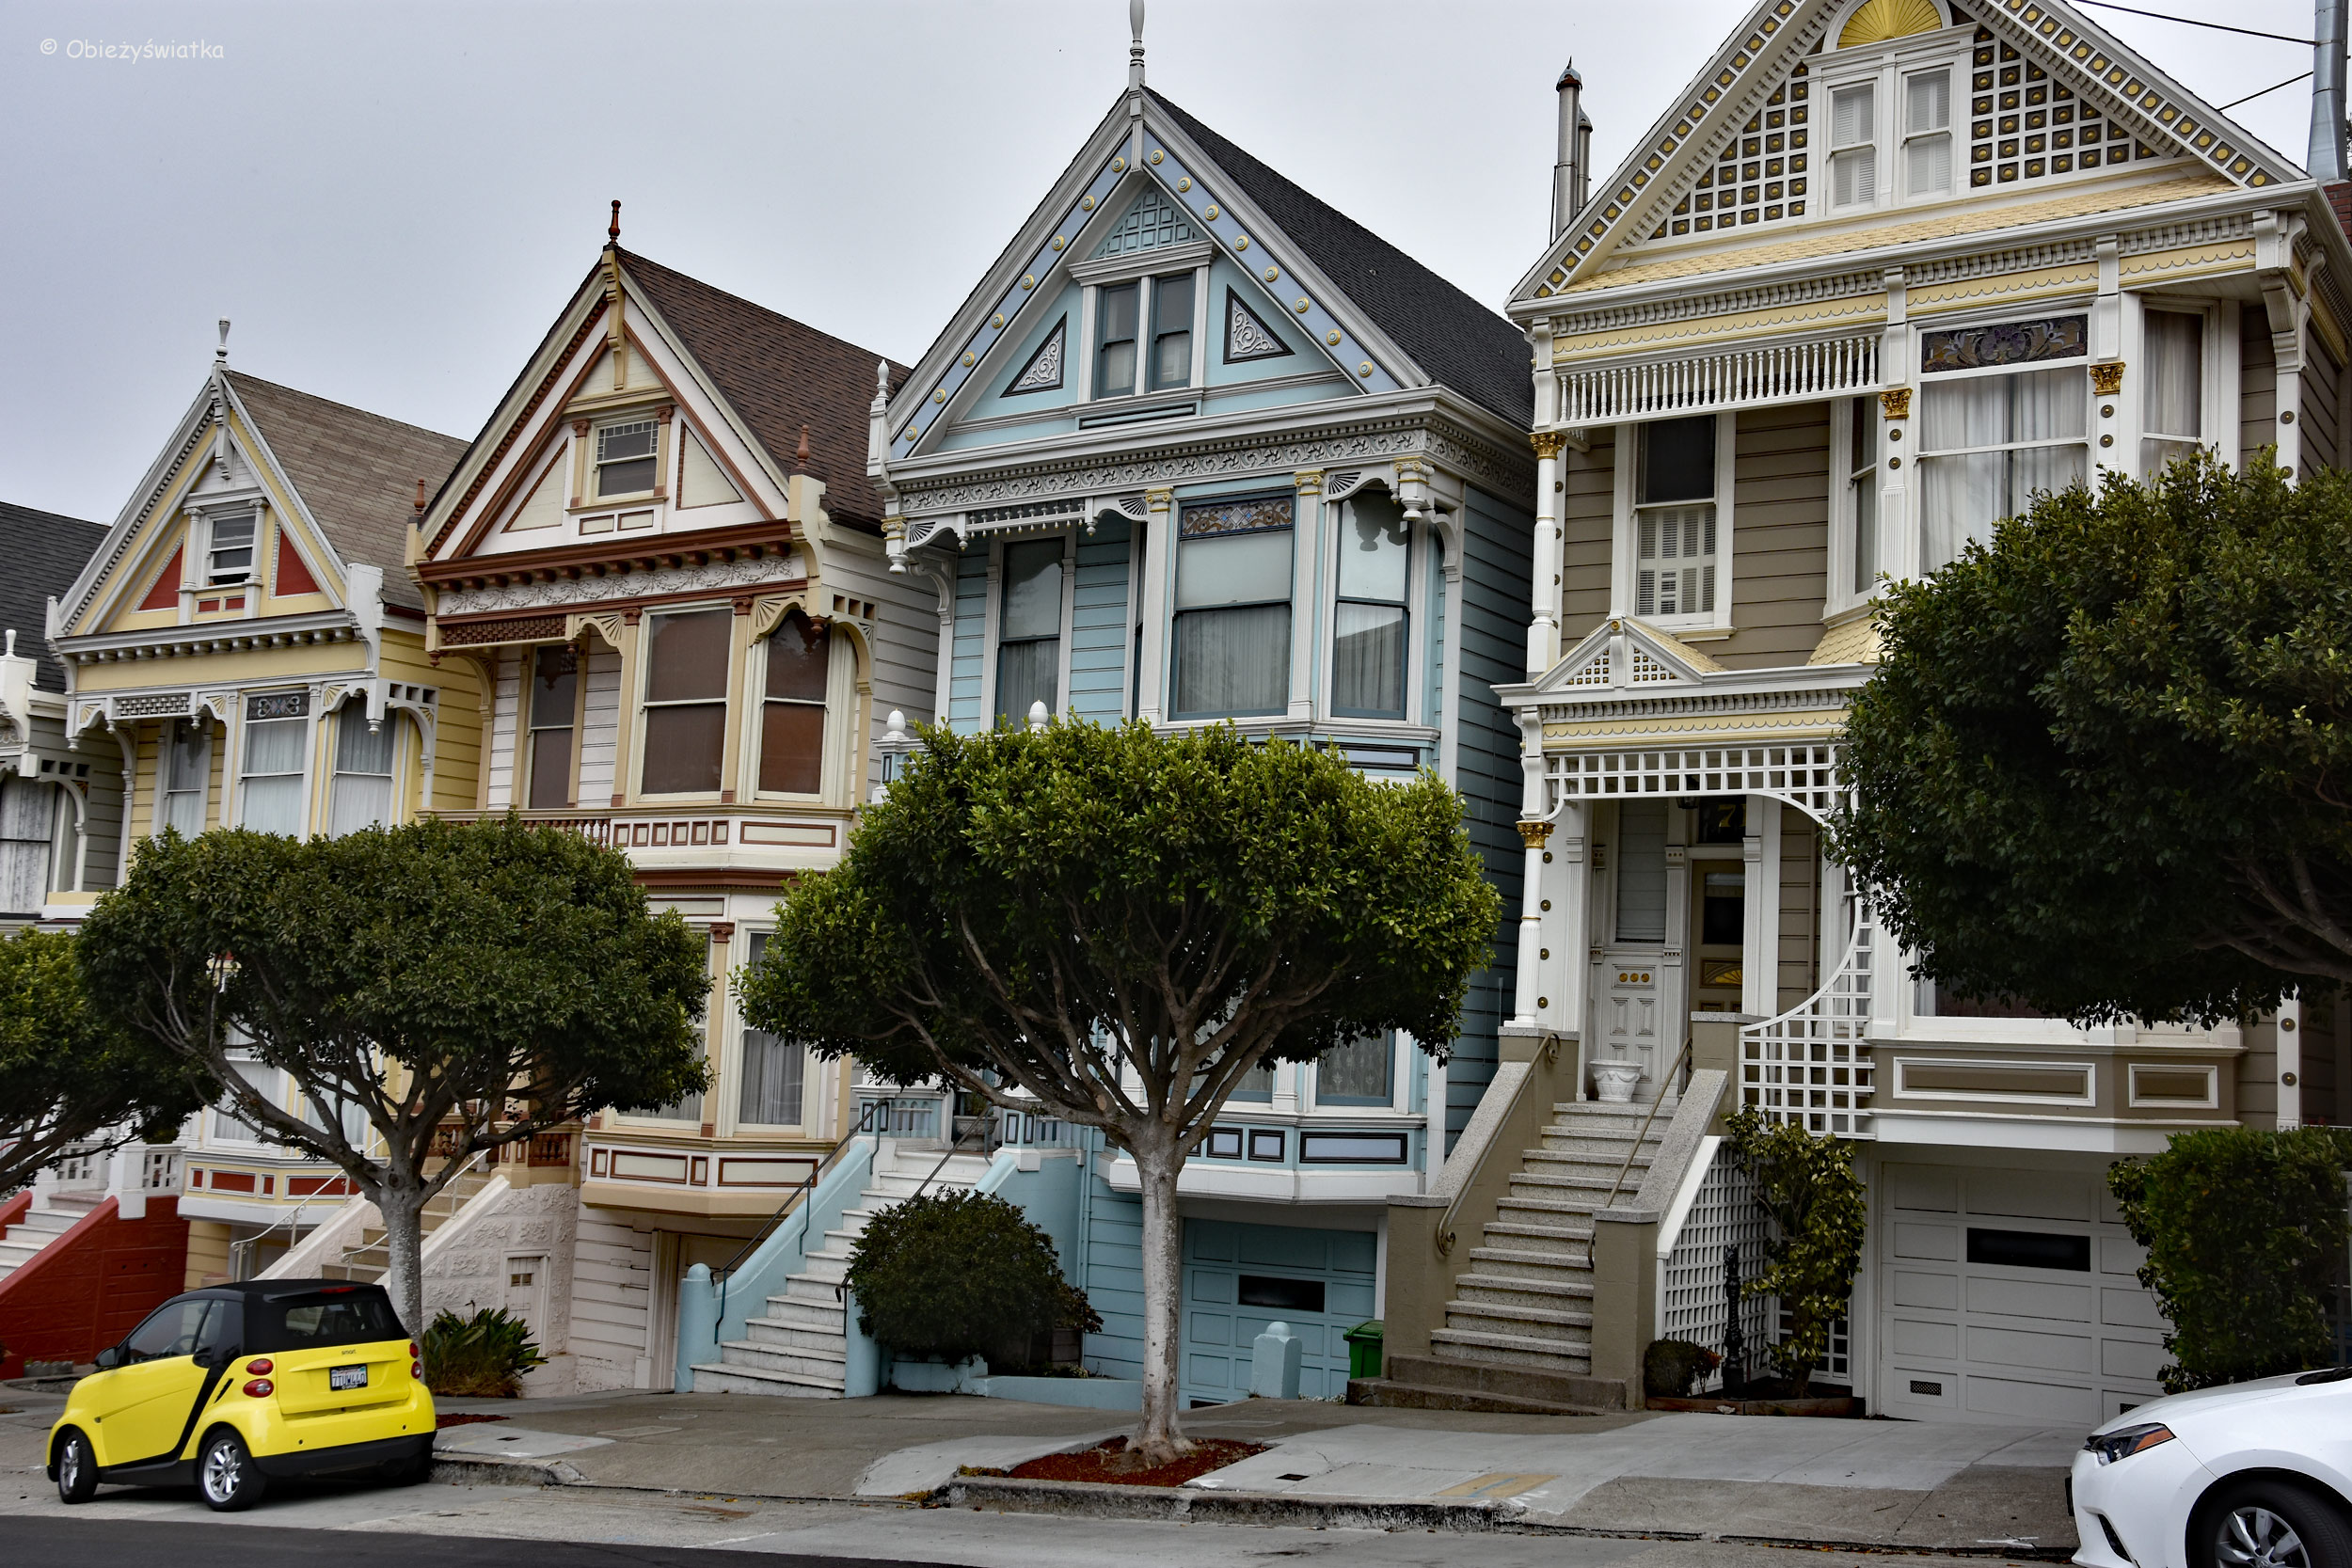 Painted Ladies w San Francisco - widok ze skweru Alamo